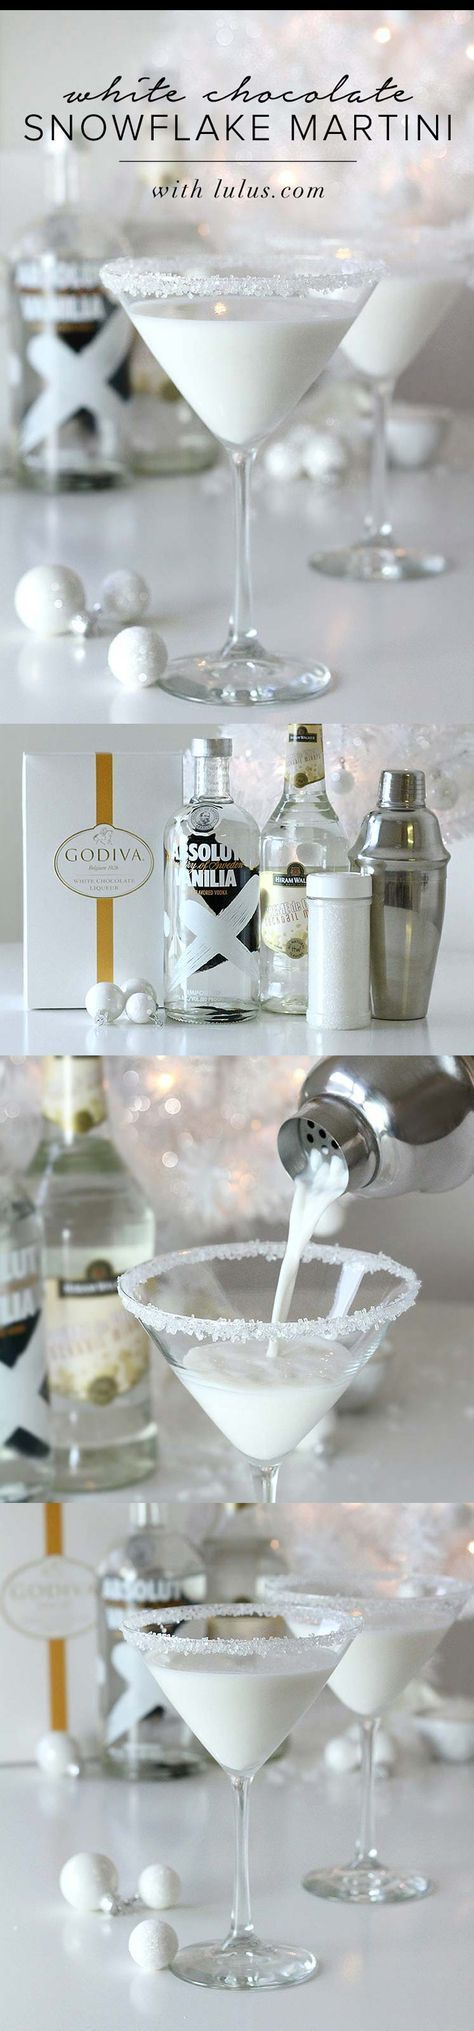 Godiva white chocolate liquor, vanilla vodka and white creme de cocoa.   I. MUST. TRY.